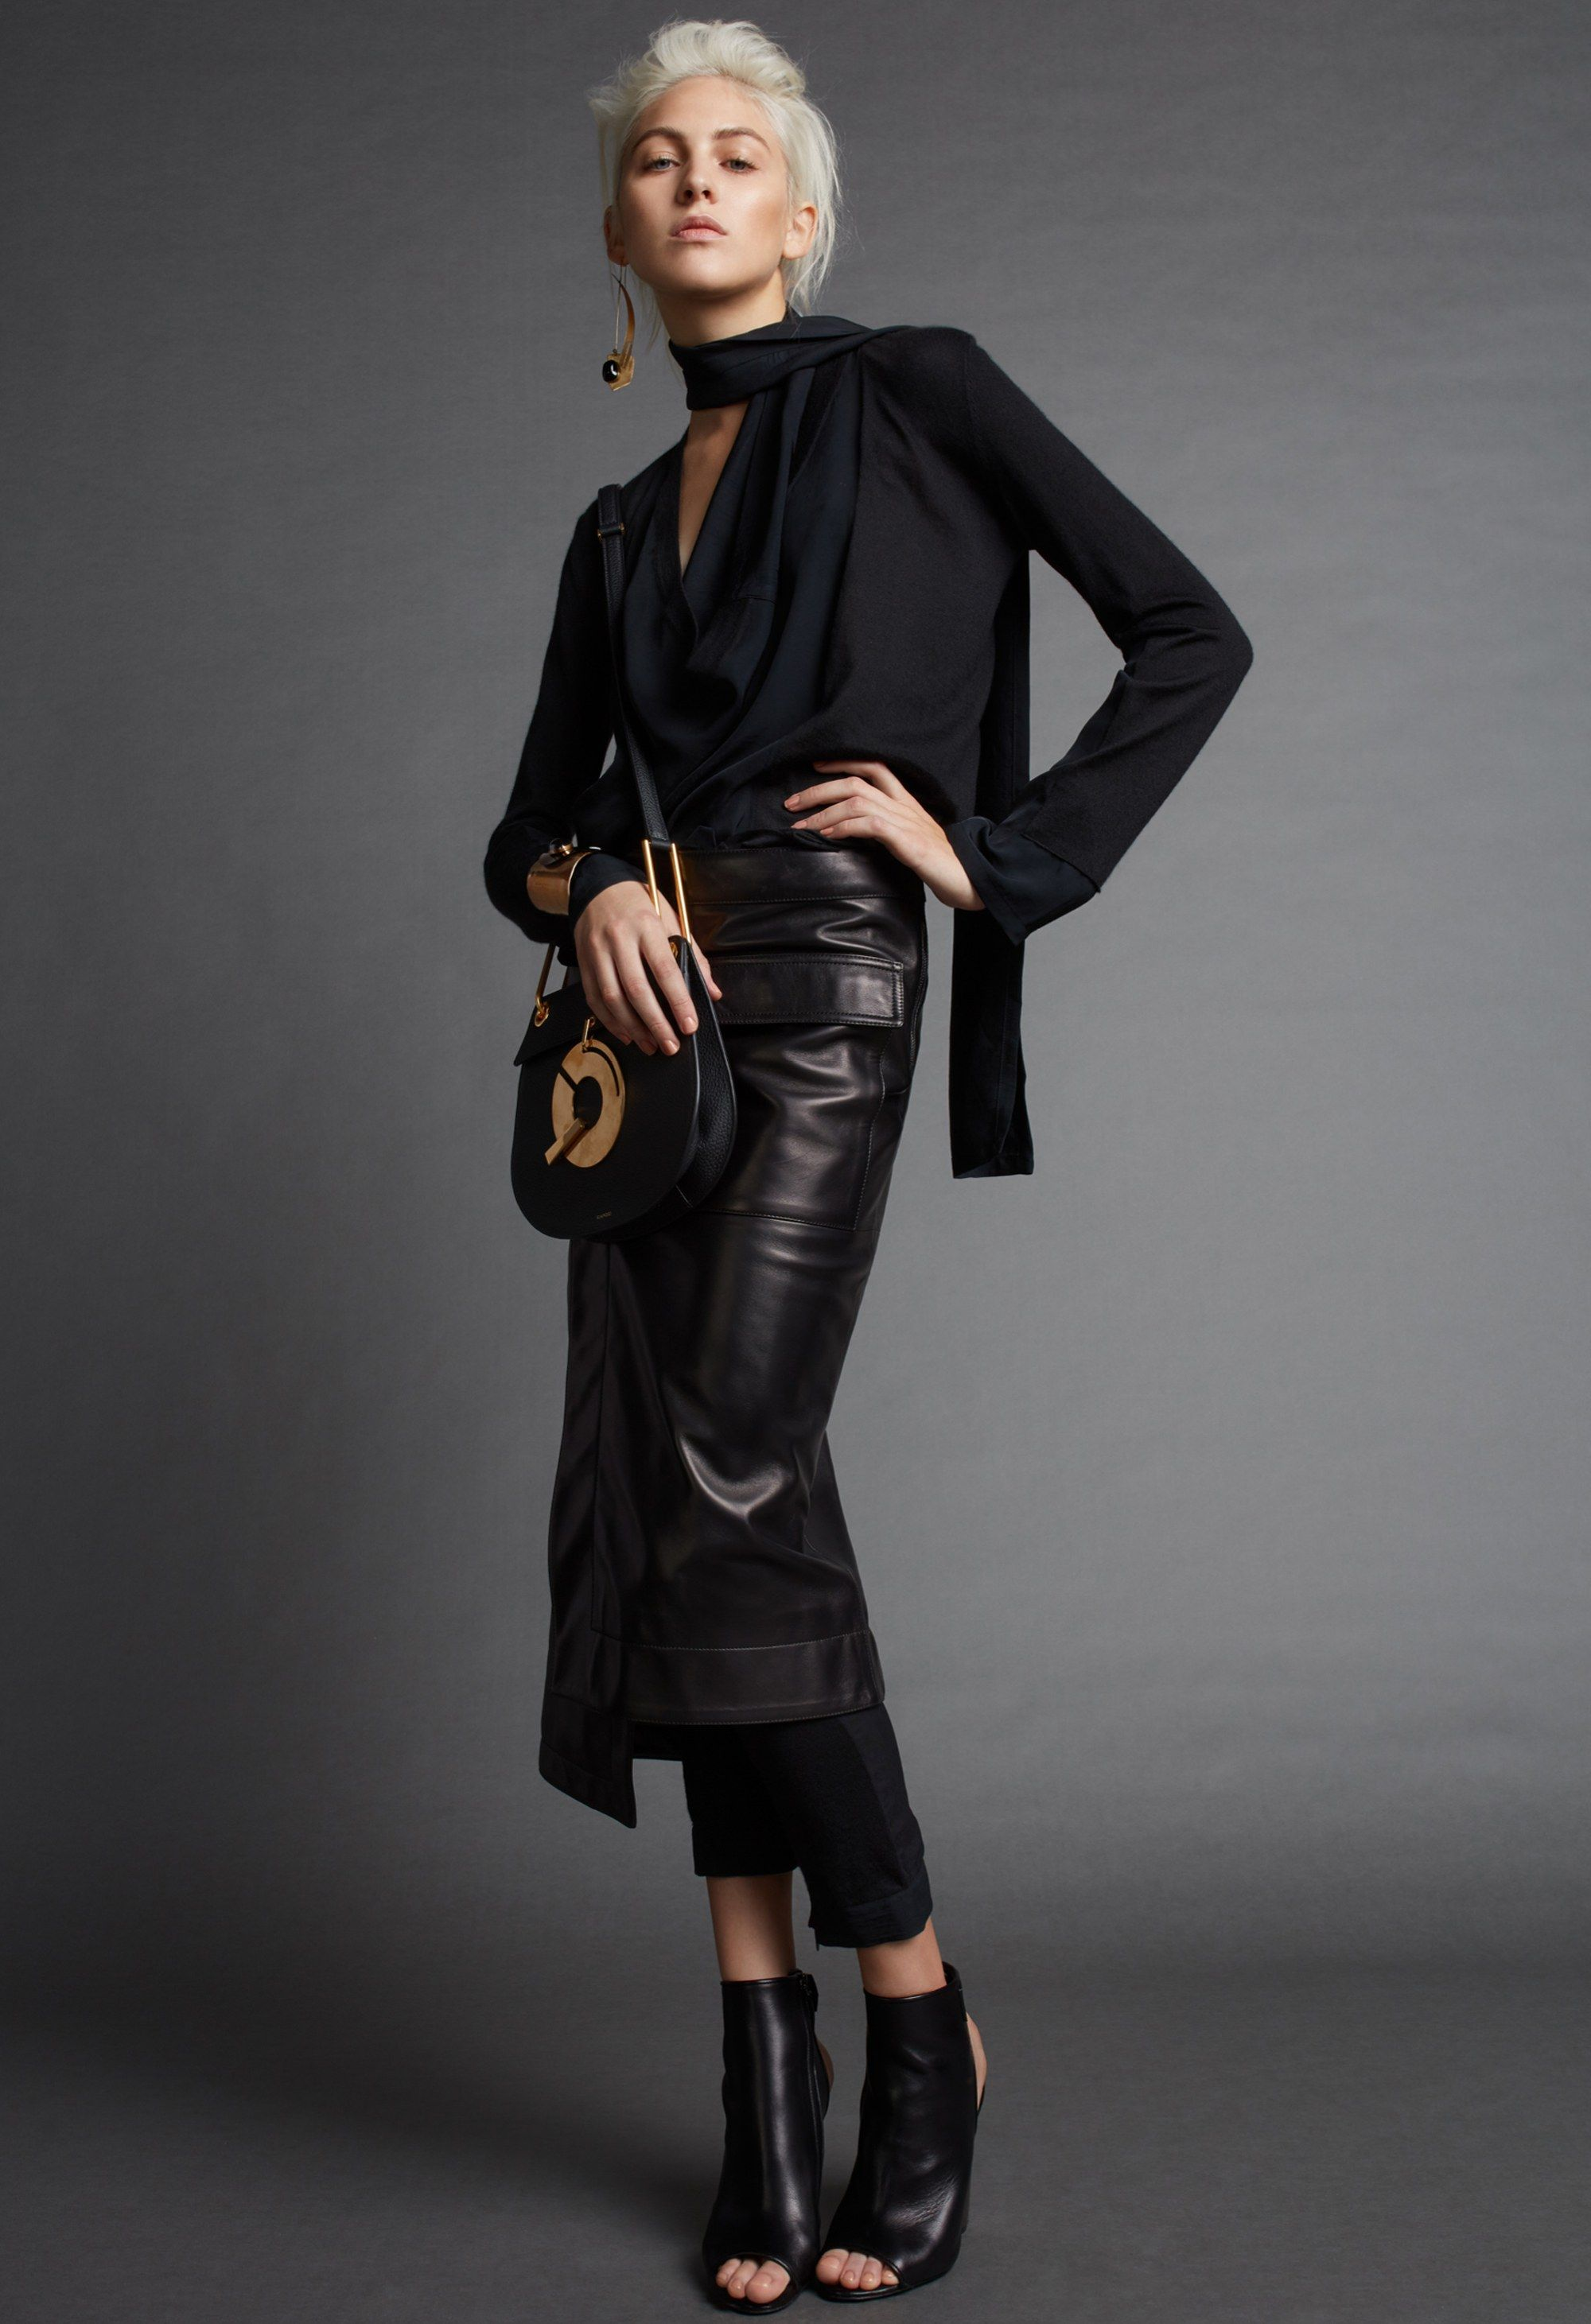 ac68bdc41c5 See Every Look From Tom Ford s New Spring  17 See-Now-Buy-Now Collection -  Vogue